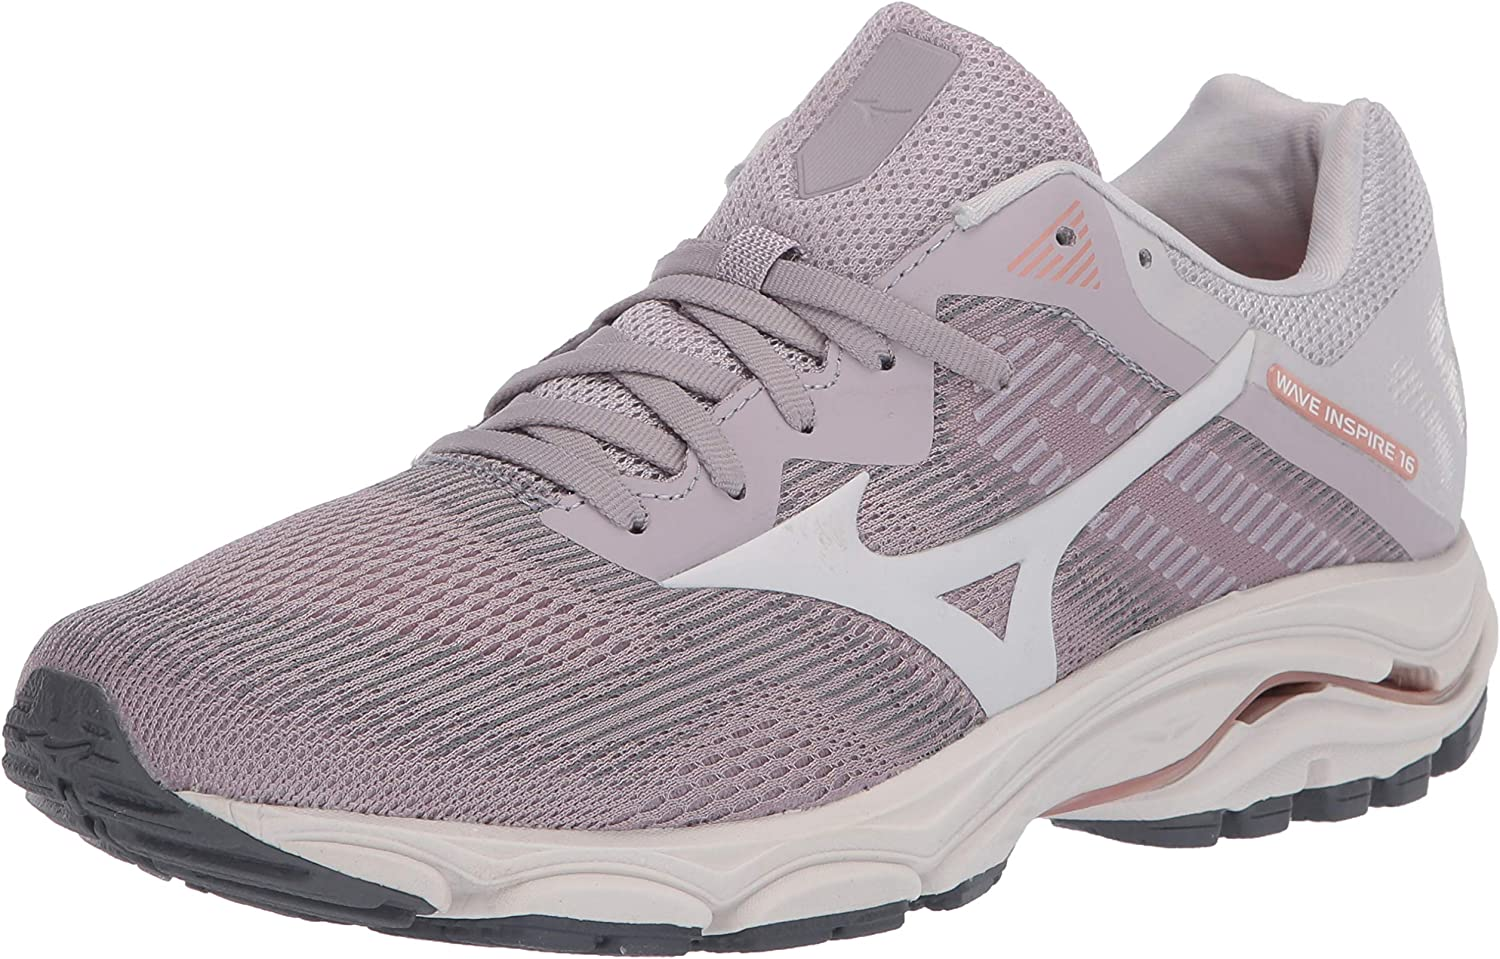 Mizuno Women's Wave Inspire Road Shoe Running 16 supreme Clearance SALE Limited time